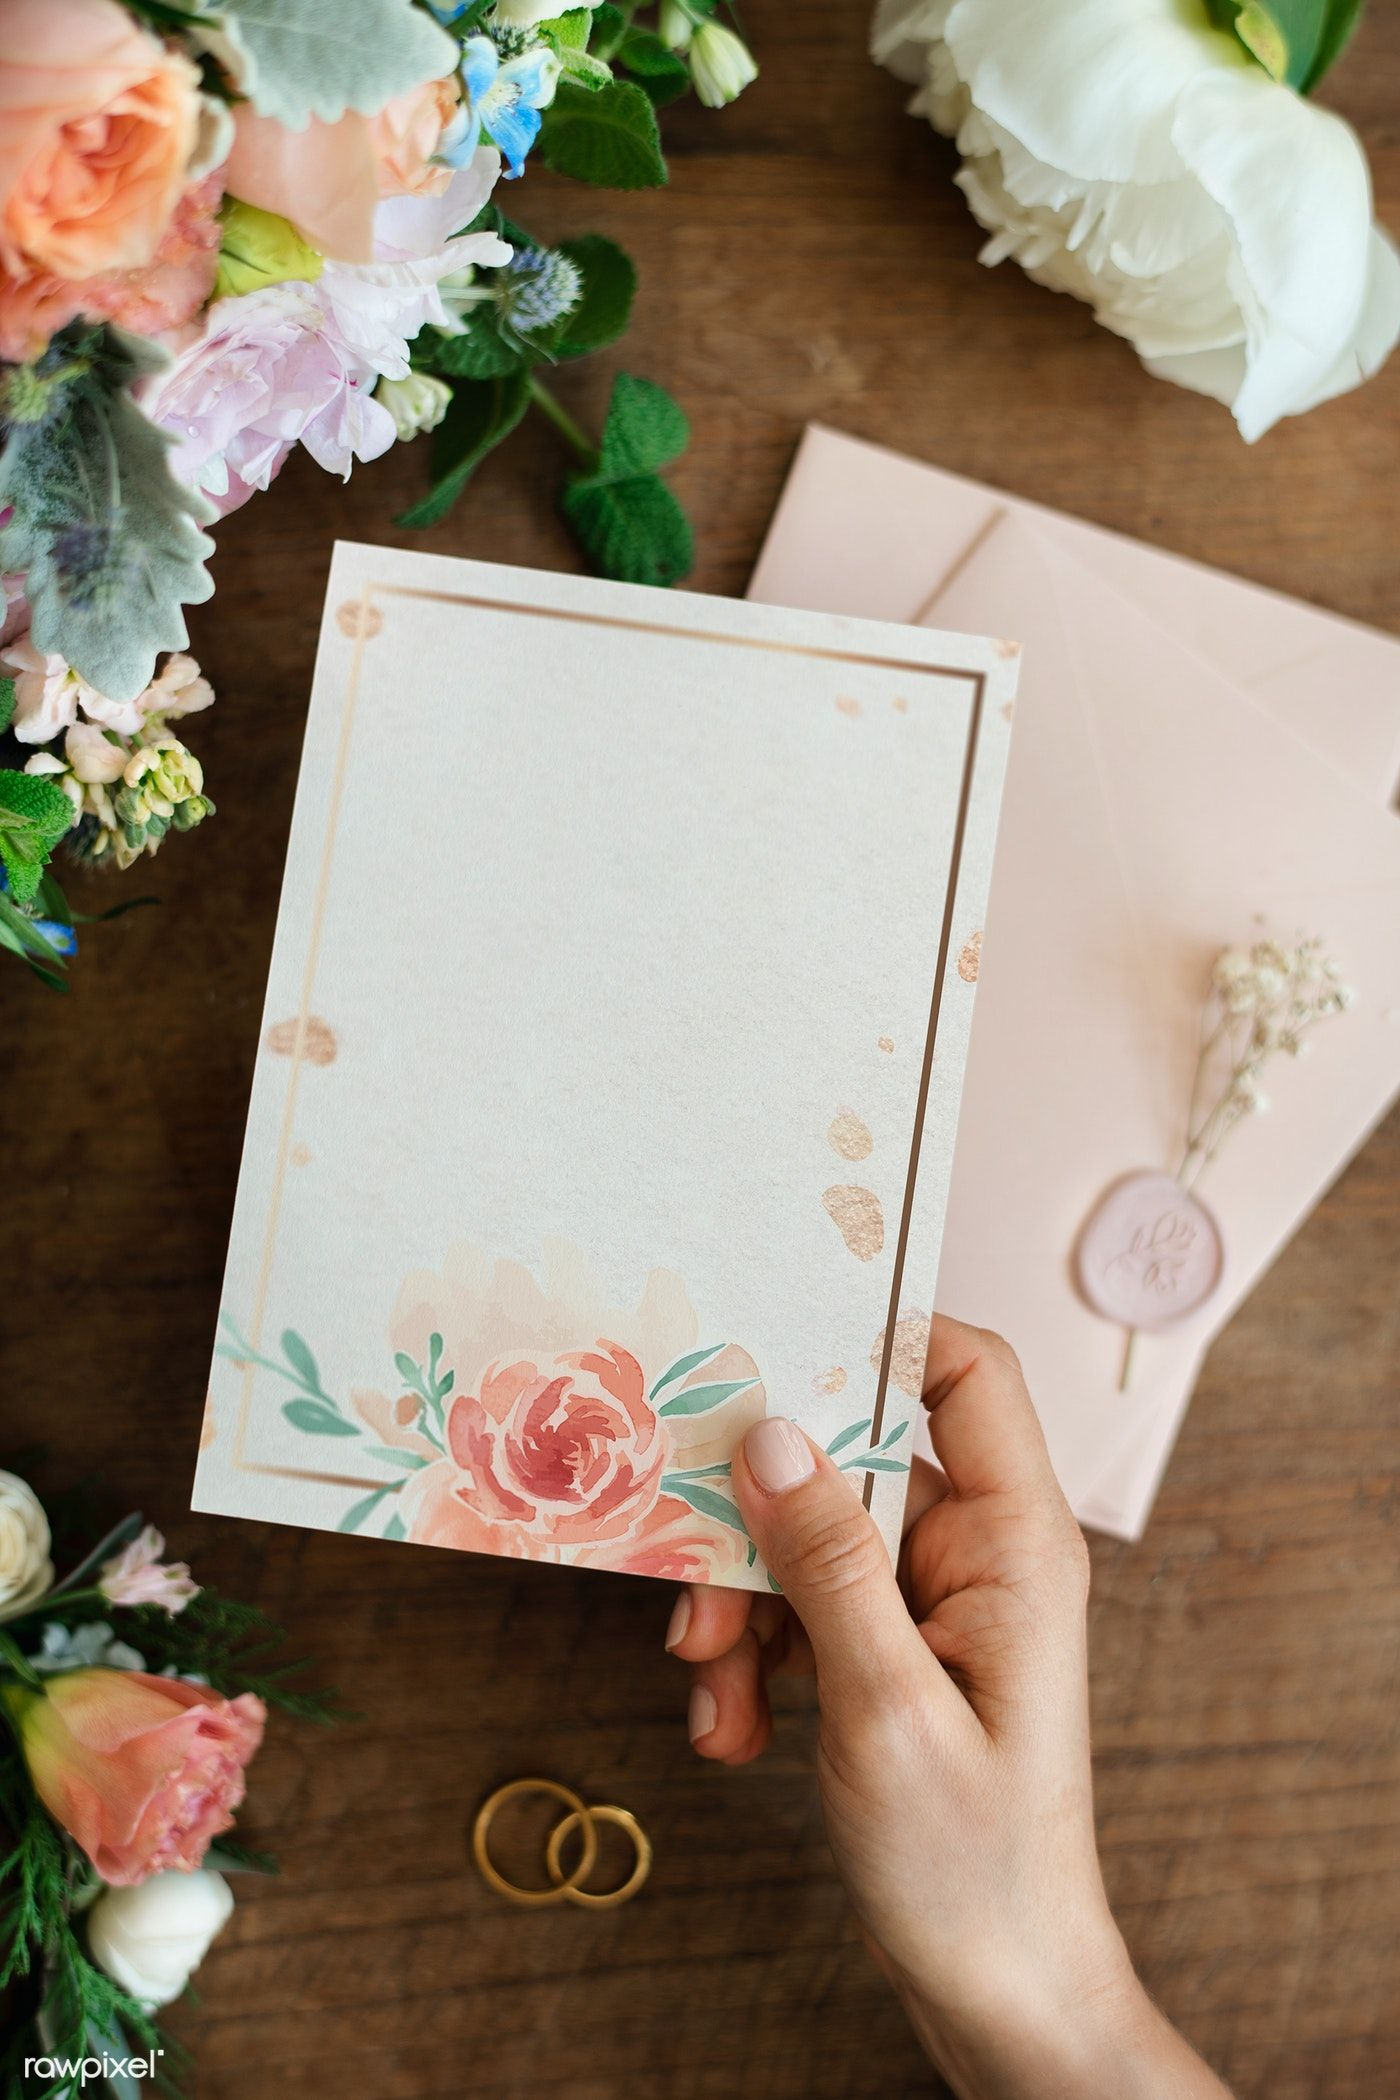 Download Premium Psd Of Woman Holding A Floral Card Mockup 1209941 Floral Cards Floral Poster Floral Border Design